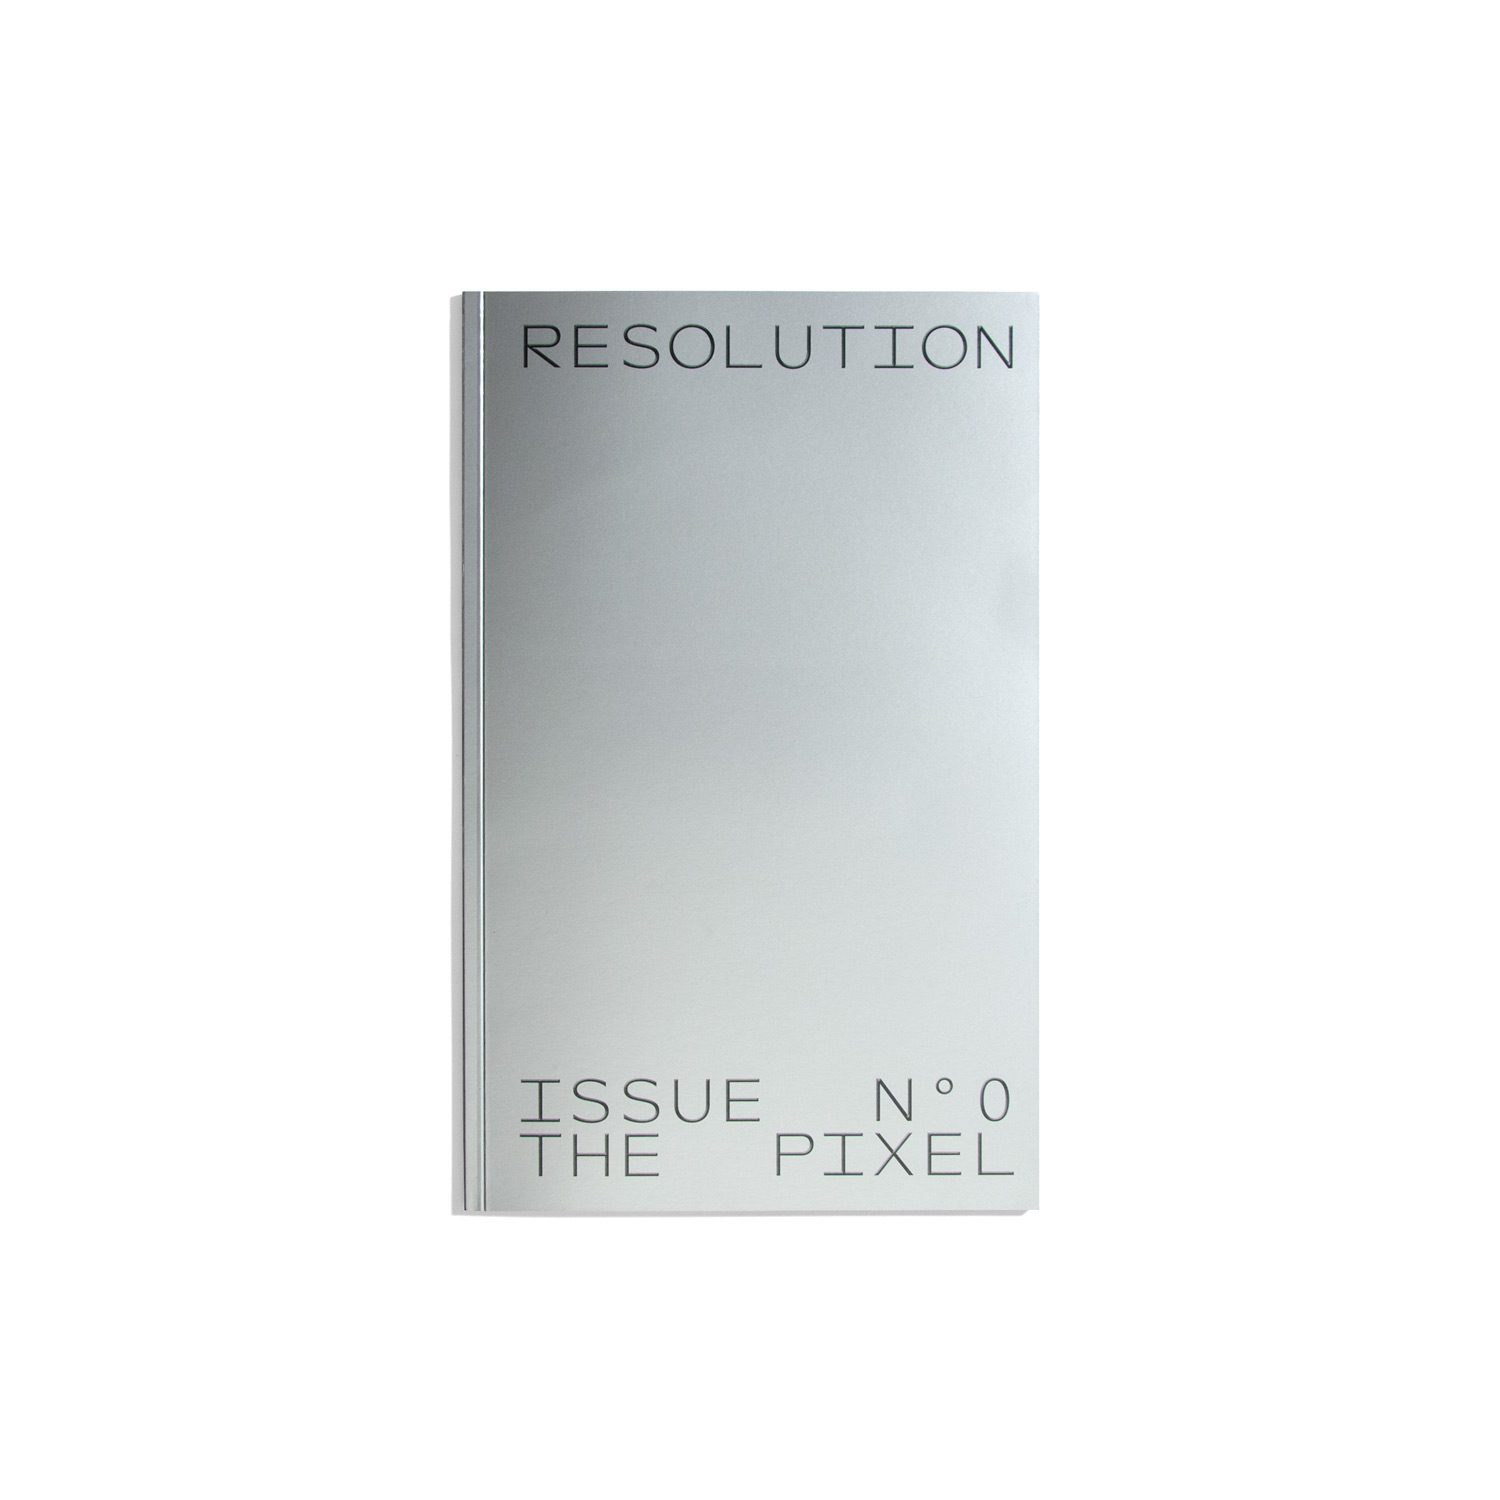 Resolution #0 - The Pixel